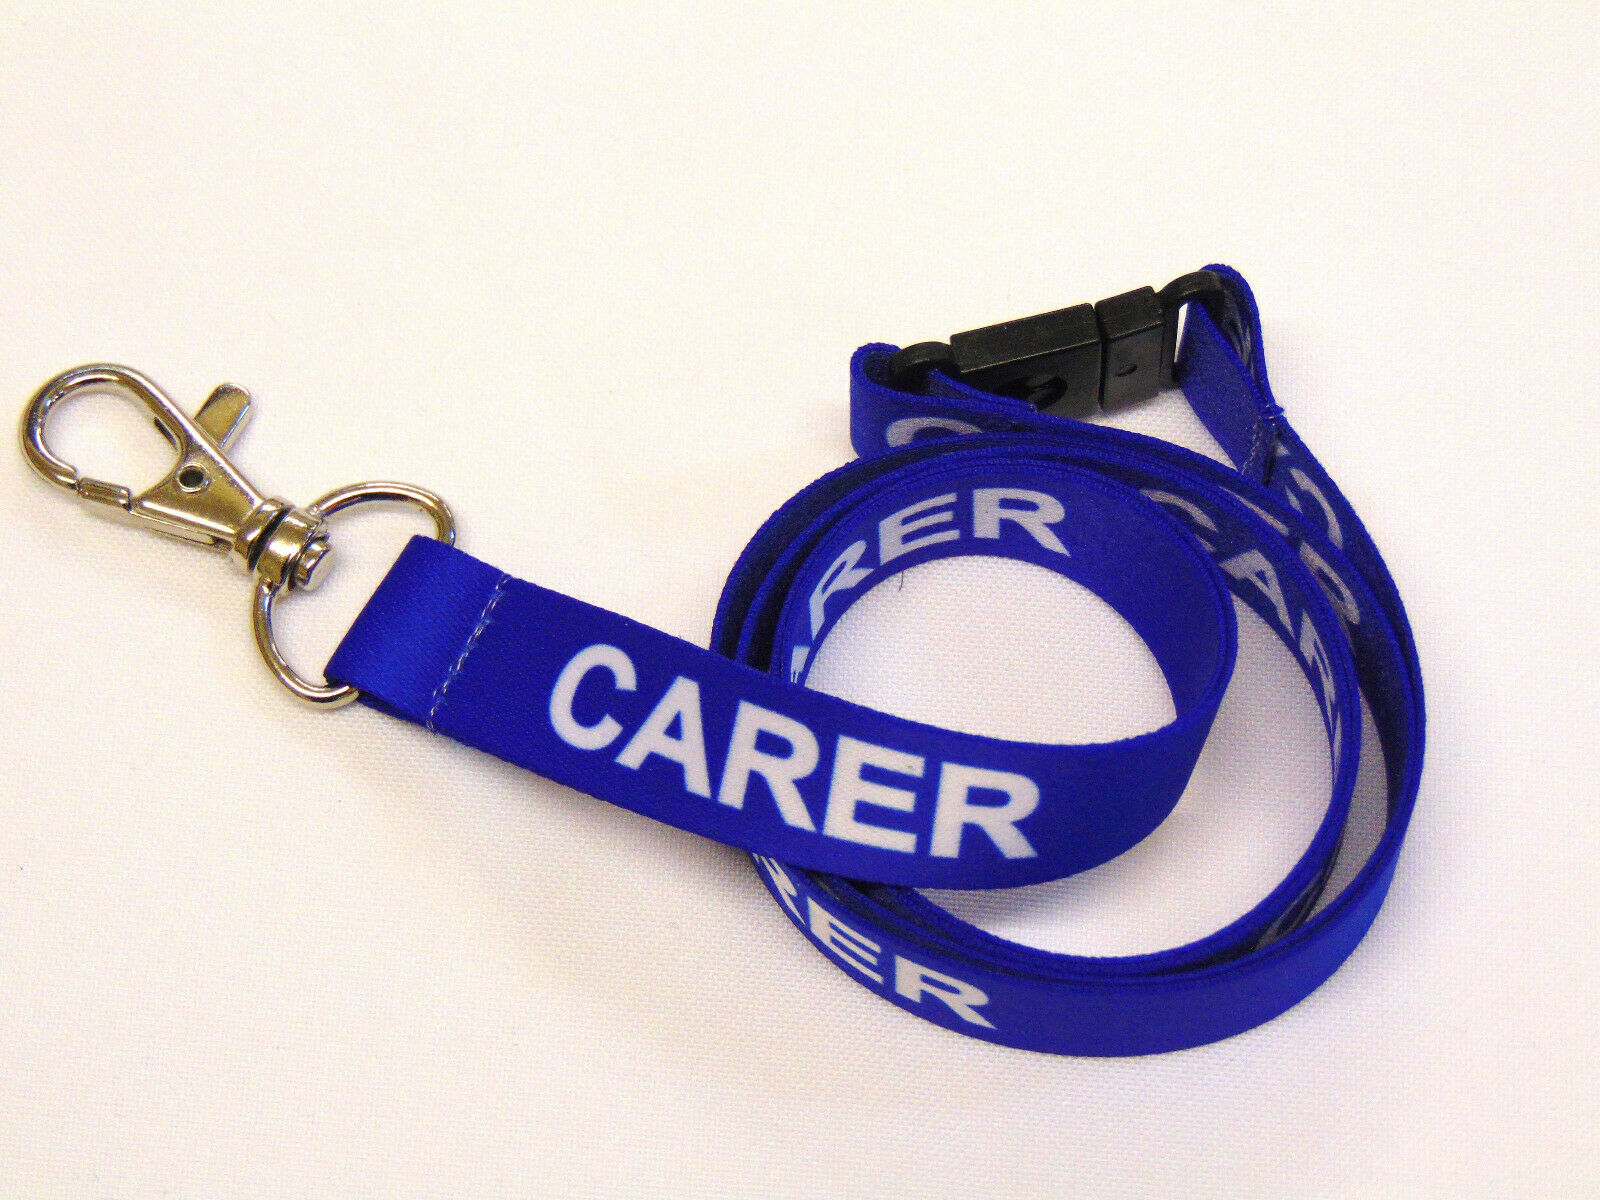 CARER lanyard blue 15mm with safety breakaway for ID & keys. Free UK post.